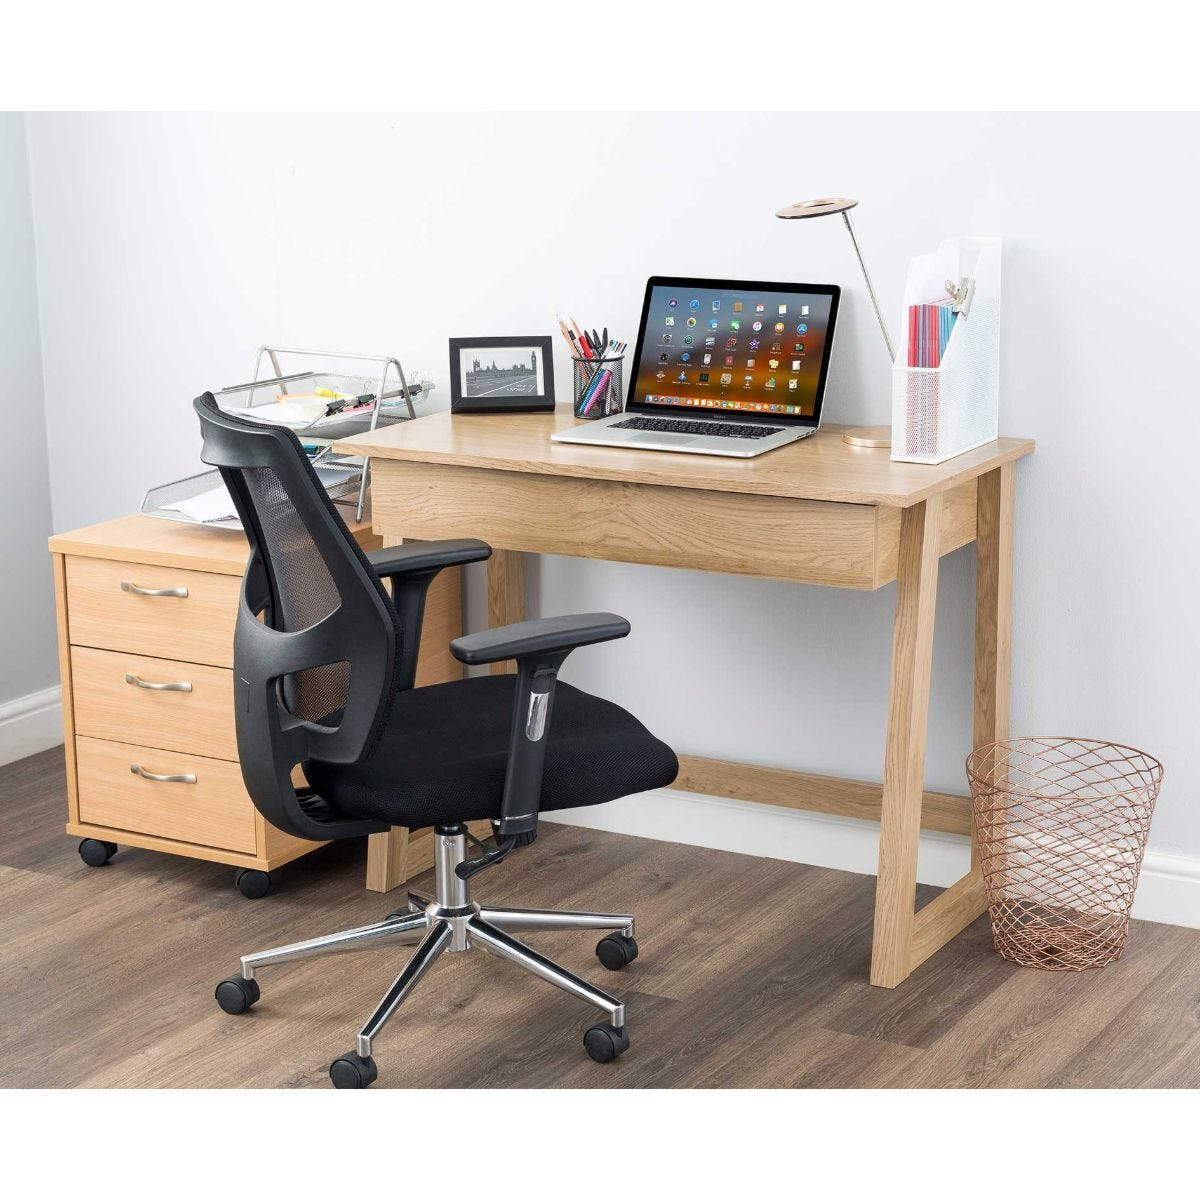 Malmo Oak Effect Office Desk with Drawer